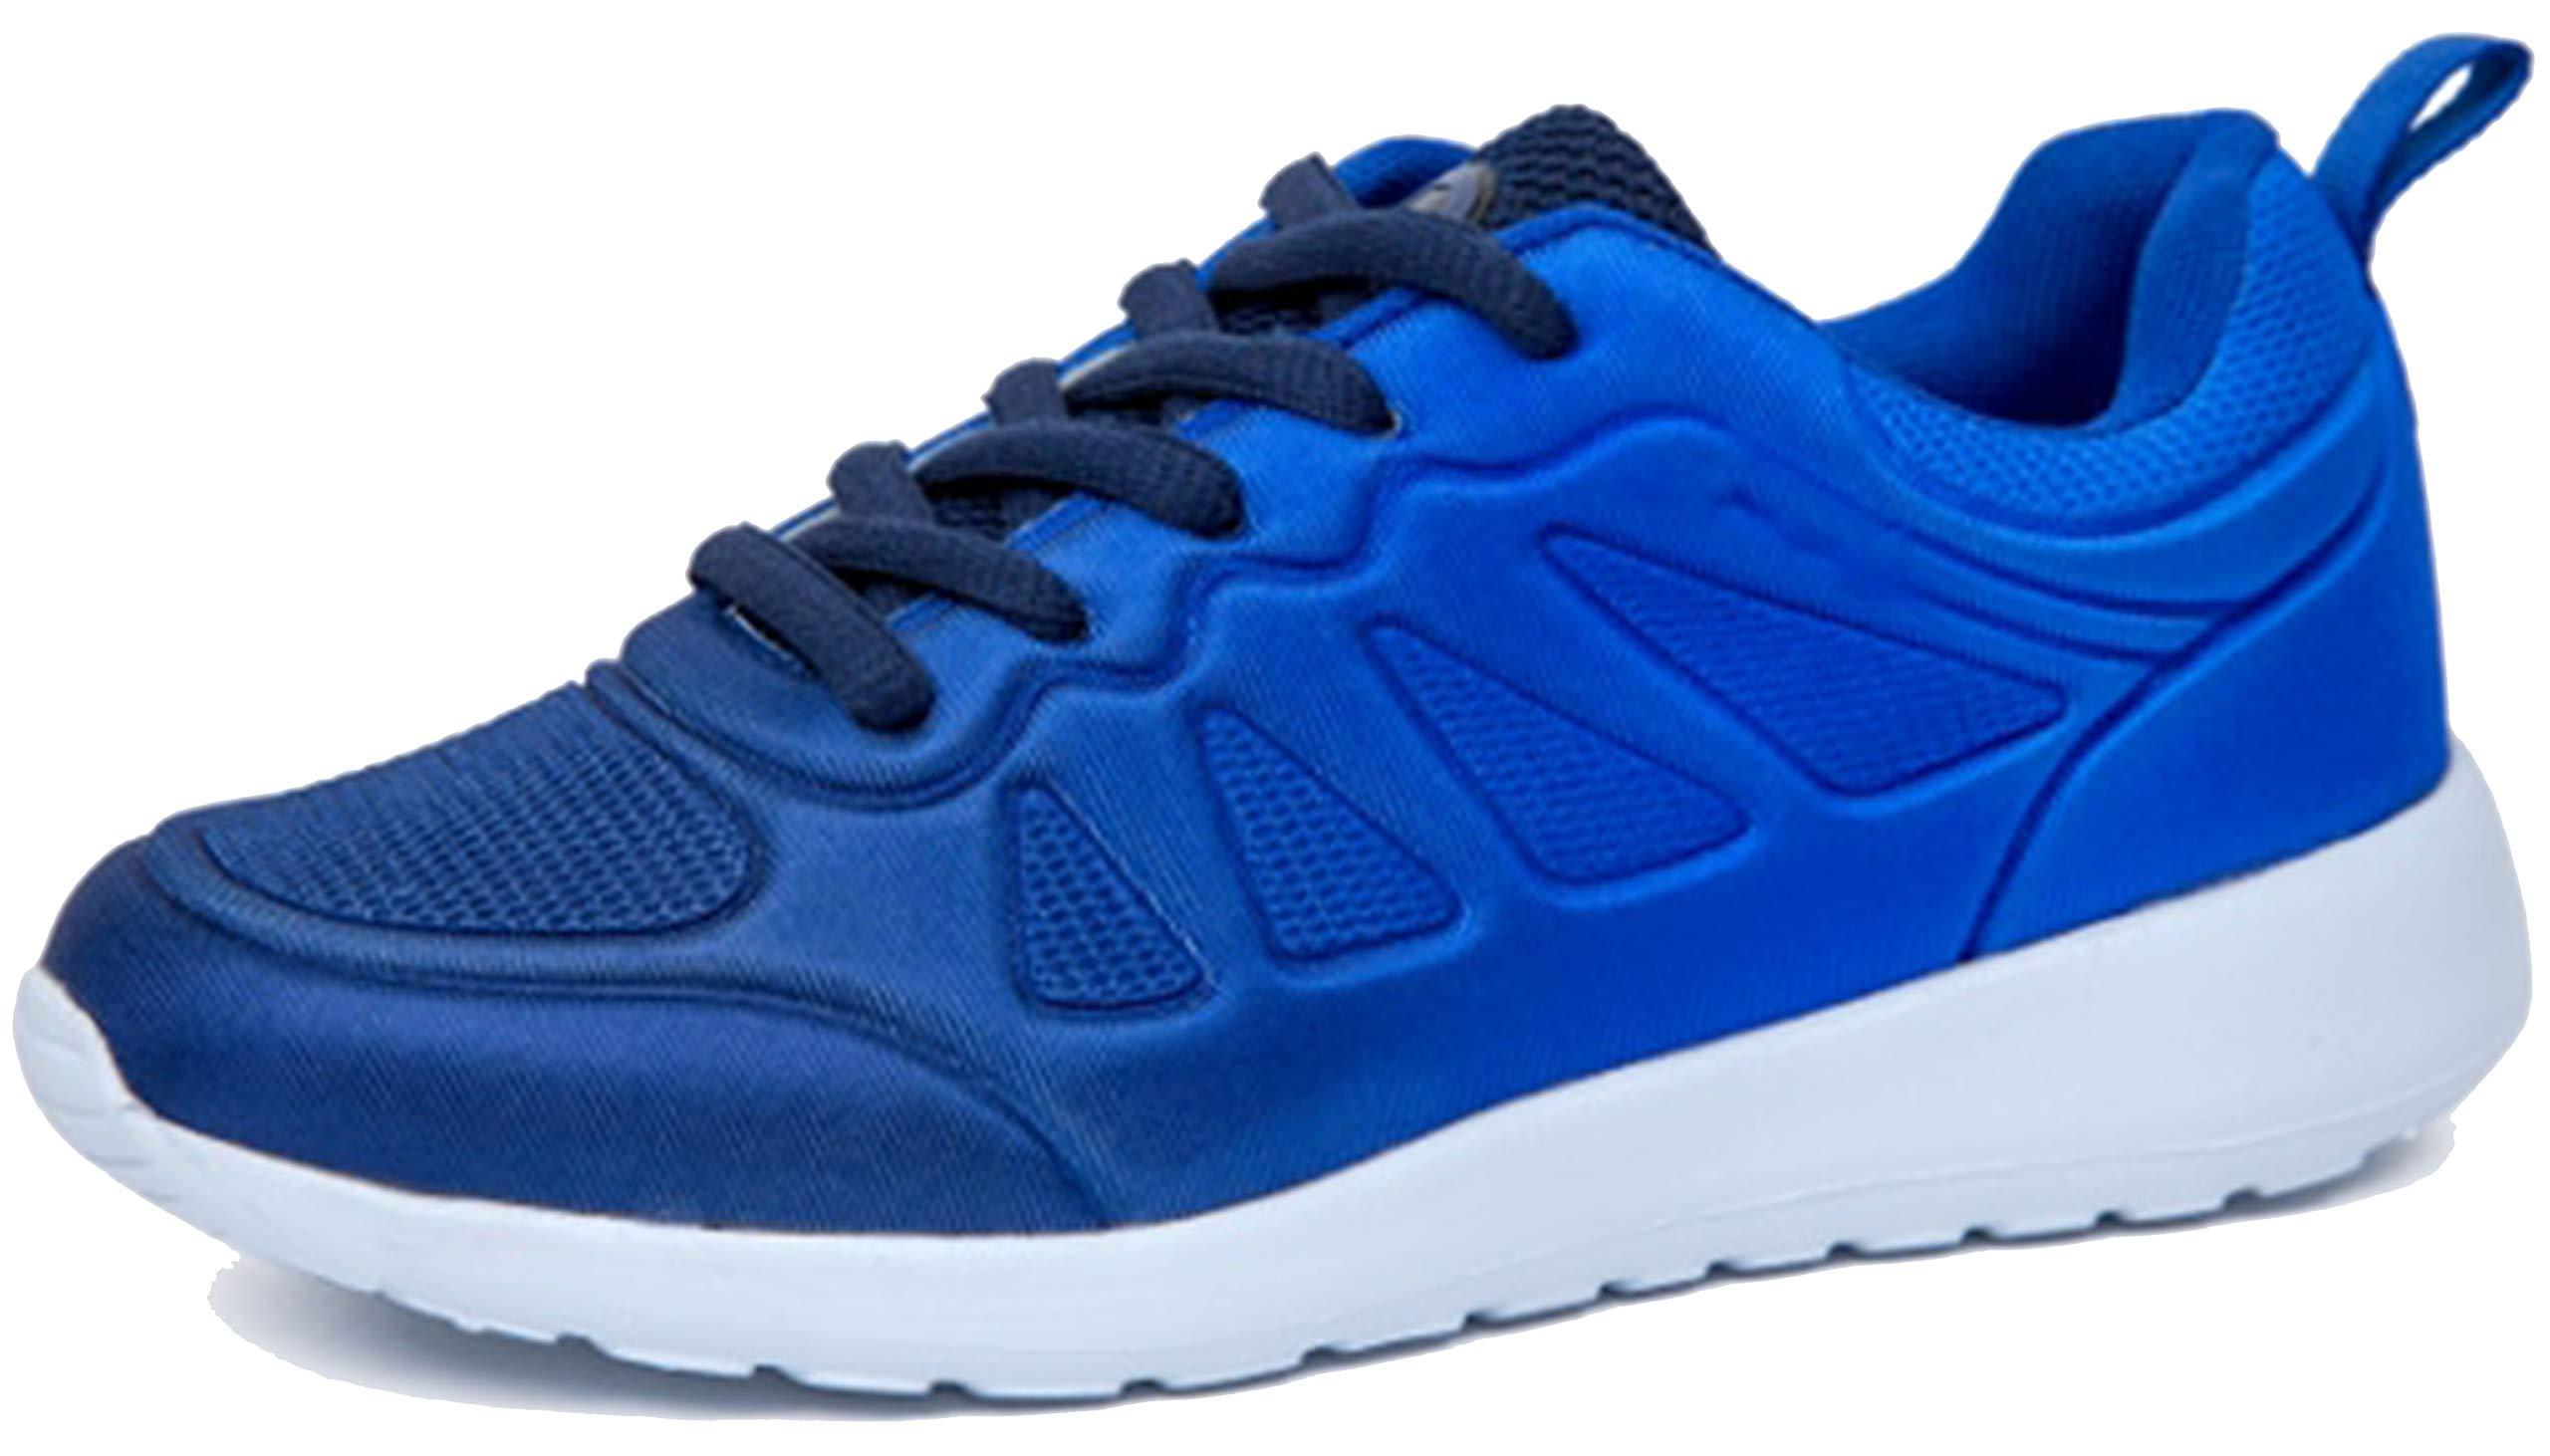 Kids Athletic Tennis Shoes - Little Kid Sneakers with Girl and Boy Sizes Royal Blue by Gimbo Kids